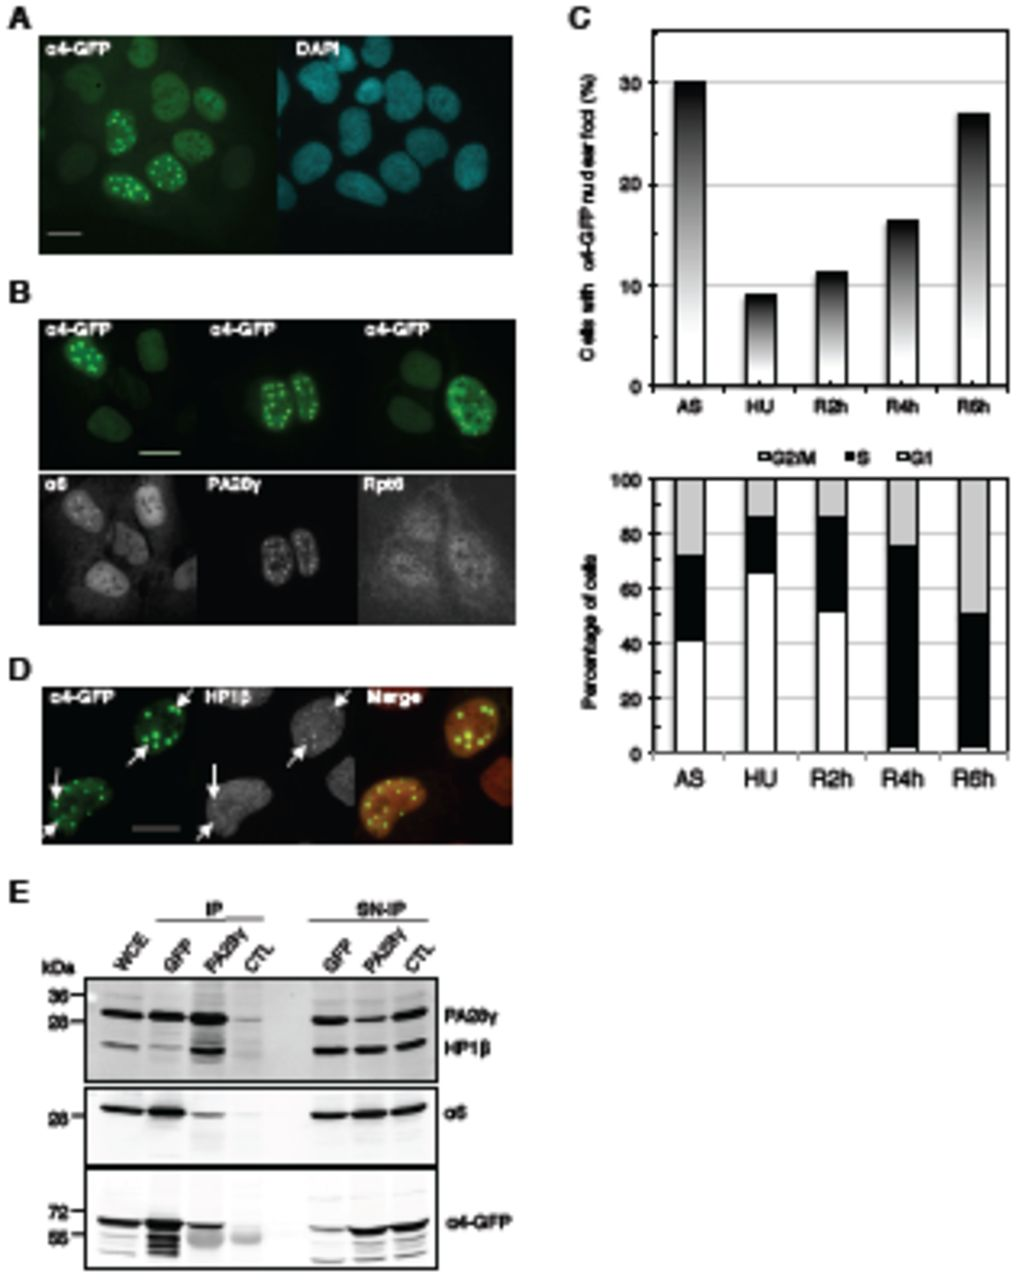 PA28γ and HP1β co-localize in α 4-GFP-20S proteasome foci. A. Stable asynchronously growing U2OS (Tet-Off) α4-GFP cells were induced for the expression of GFP-tagged α4 subunit of the 20S proteasome (α4-GFP, green) for 24 hours in the absence of tetracycline, then fixed and stained with DAPI (blue). Scale bar, 10 μm. B. Induced U2OS-α4-GFP cells (α4-GFP, green), as in A, were immunostained with antibody raised against alpha 6 subunit of the 20S proteasome (α6, left panel), the regulatory complex PA28γ (PA28γ, middle panel) and a subunit of the 19S regulatory complex (Rpt6, right panel), all in grey. Scale bar, 10 μm. C. α4-GFP foci are associated with chromatin. Induced U2OS-α4-GFP cells (α4-GFP, green), as in A, were not treated (- CSK buffer) or treated (+ CSK buffer) with an extraction CSK buffer, then fixed and immunostained with anti-PA28γ antibodies (red). Scale bar, 5 μm. D. Induced U2OS-α4-GFP cells (α4-GFP, green) were immunostained with anti-HP1β antibodies (grey). A merge image of GFP and HP1β signal is shown. Scale bar, 10 μm. Arrows indicate sites of co-localization between HP1β and α4-GFP. E. Co-immunoprecipitation of PA28γ and HP1β in asynchronous induced U2OS-α4-GFP cells. Induced U2OS-α4-GFP cells, as in A, were lysed and subjected to pull-down with either an antibody raised against PA28γ or GFP-TRAP, or the appropriate isotype control (CTL). An immunoblot of the pull-down (IP) and supernatant (SN) from whole-cell extracts (WCE) was probed with the antibodies indicated. F. U2OS-α4-GFP cells were transfected with si-Luc, si-PA28γ or si-HP1β. One day later, the expression of α4-GFP was induced, and cells were recovered 48 hours after siRNA treatment. Immunostaining was performed to detect PA28γ (red) and HP1β (magenta) in cells treated with the siRNA indicated. Representative images are shown (left). Arrows indicate cells with α4-GFP and PA28γ foci. Scale bar, 10 μm. The percentage of cells with α4-GFP foci is shown in the bar graph (right). Error bar